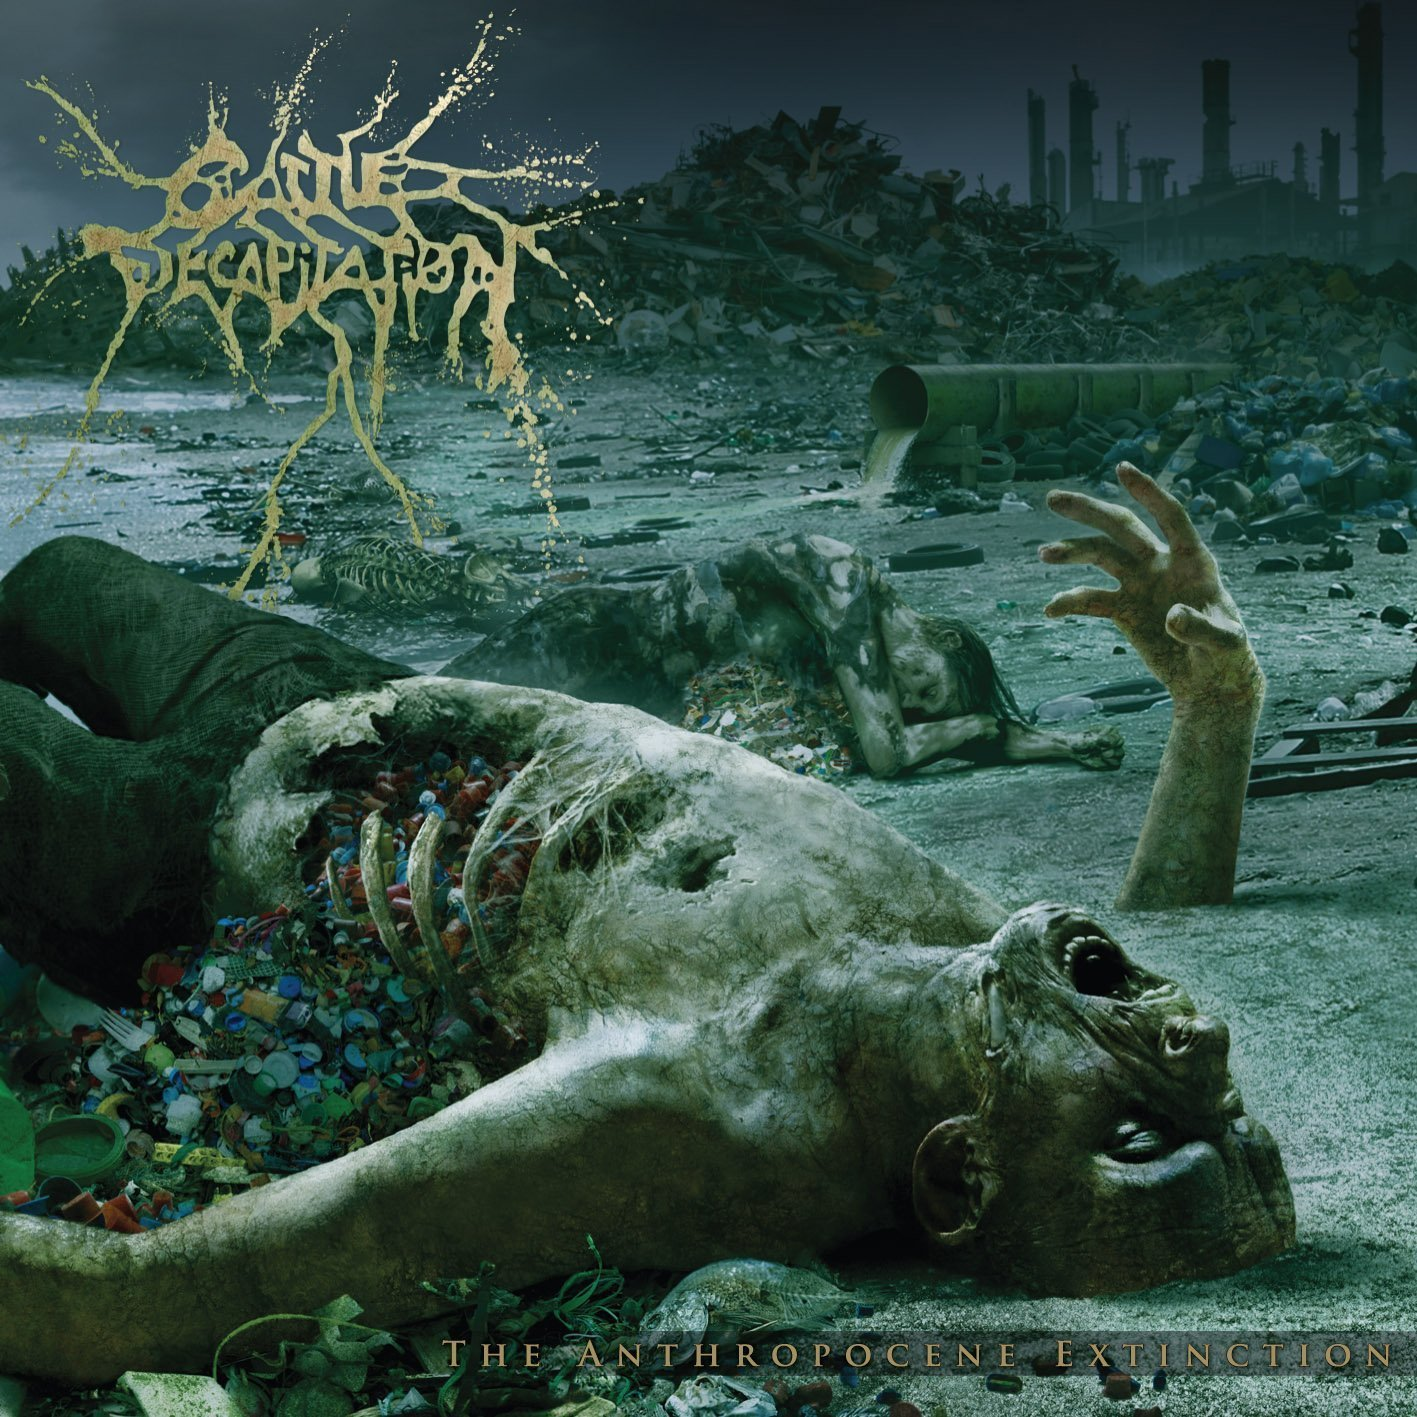 Cattle Decapitation, Anthropocene Extinction